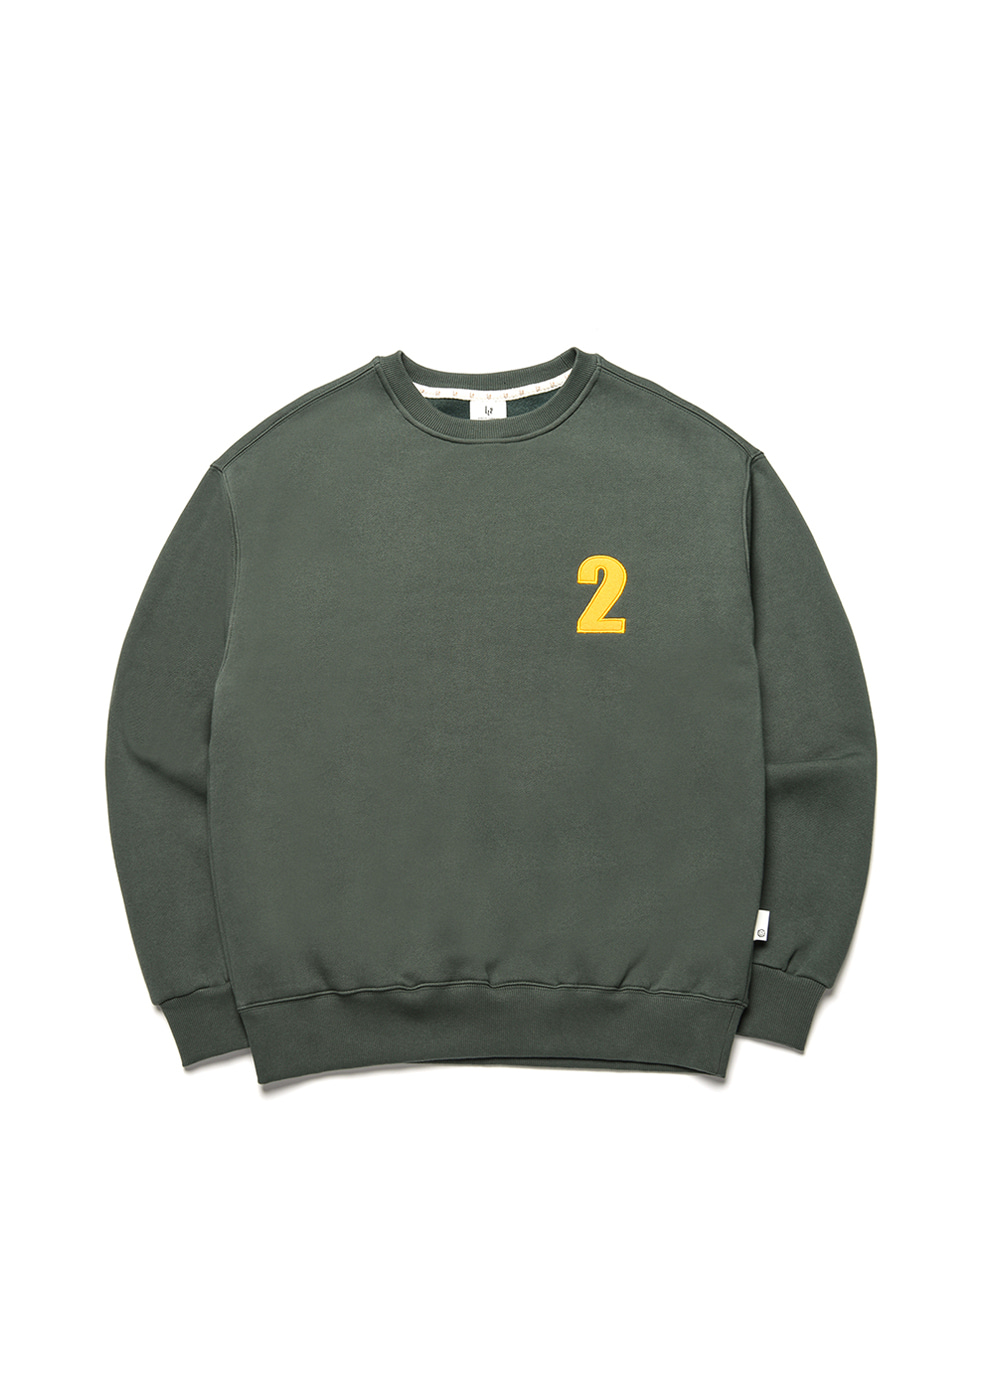 2 Logo sweat shirt [dark green]